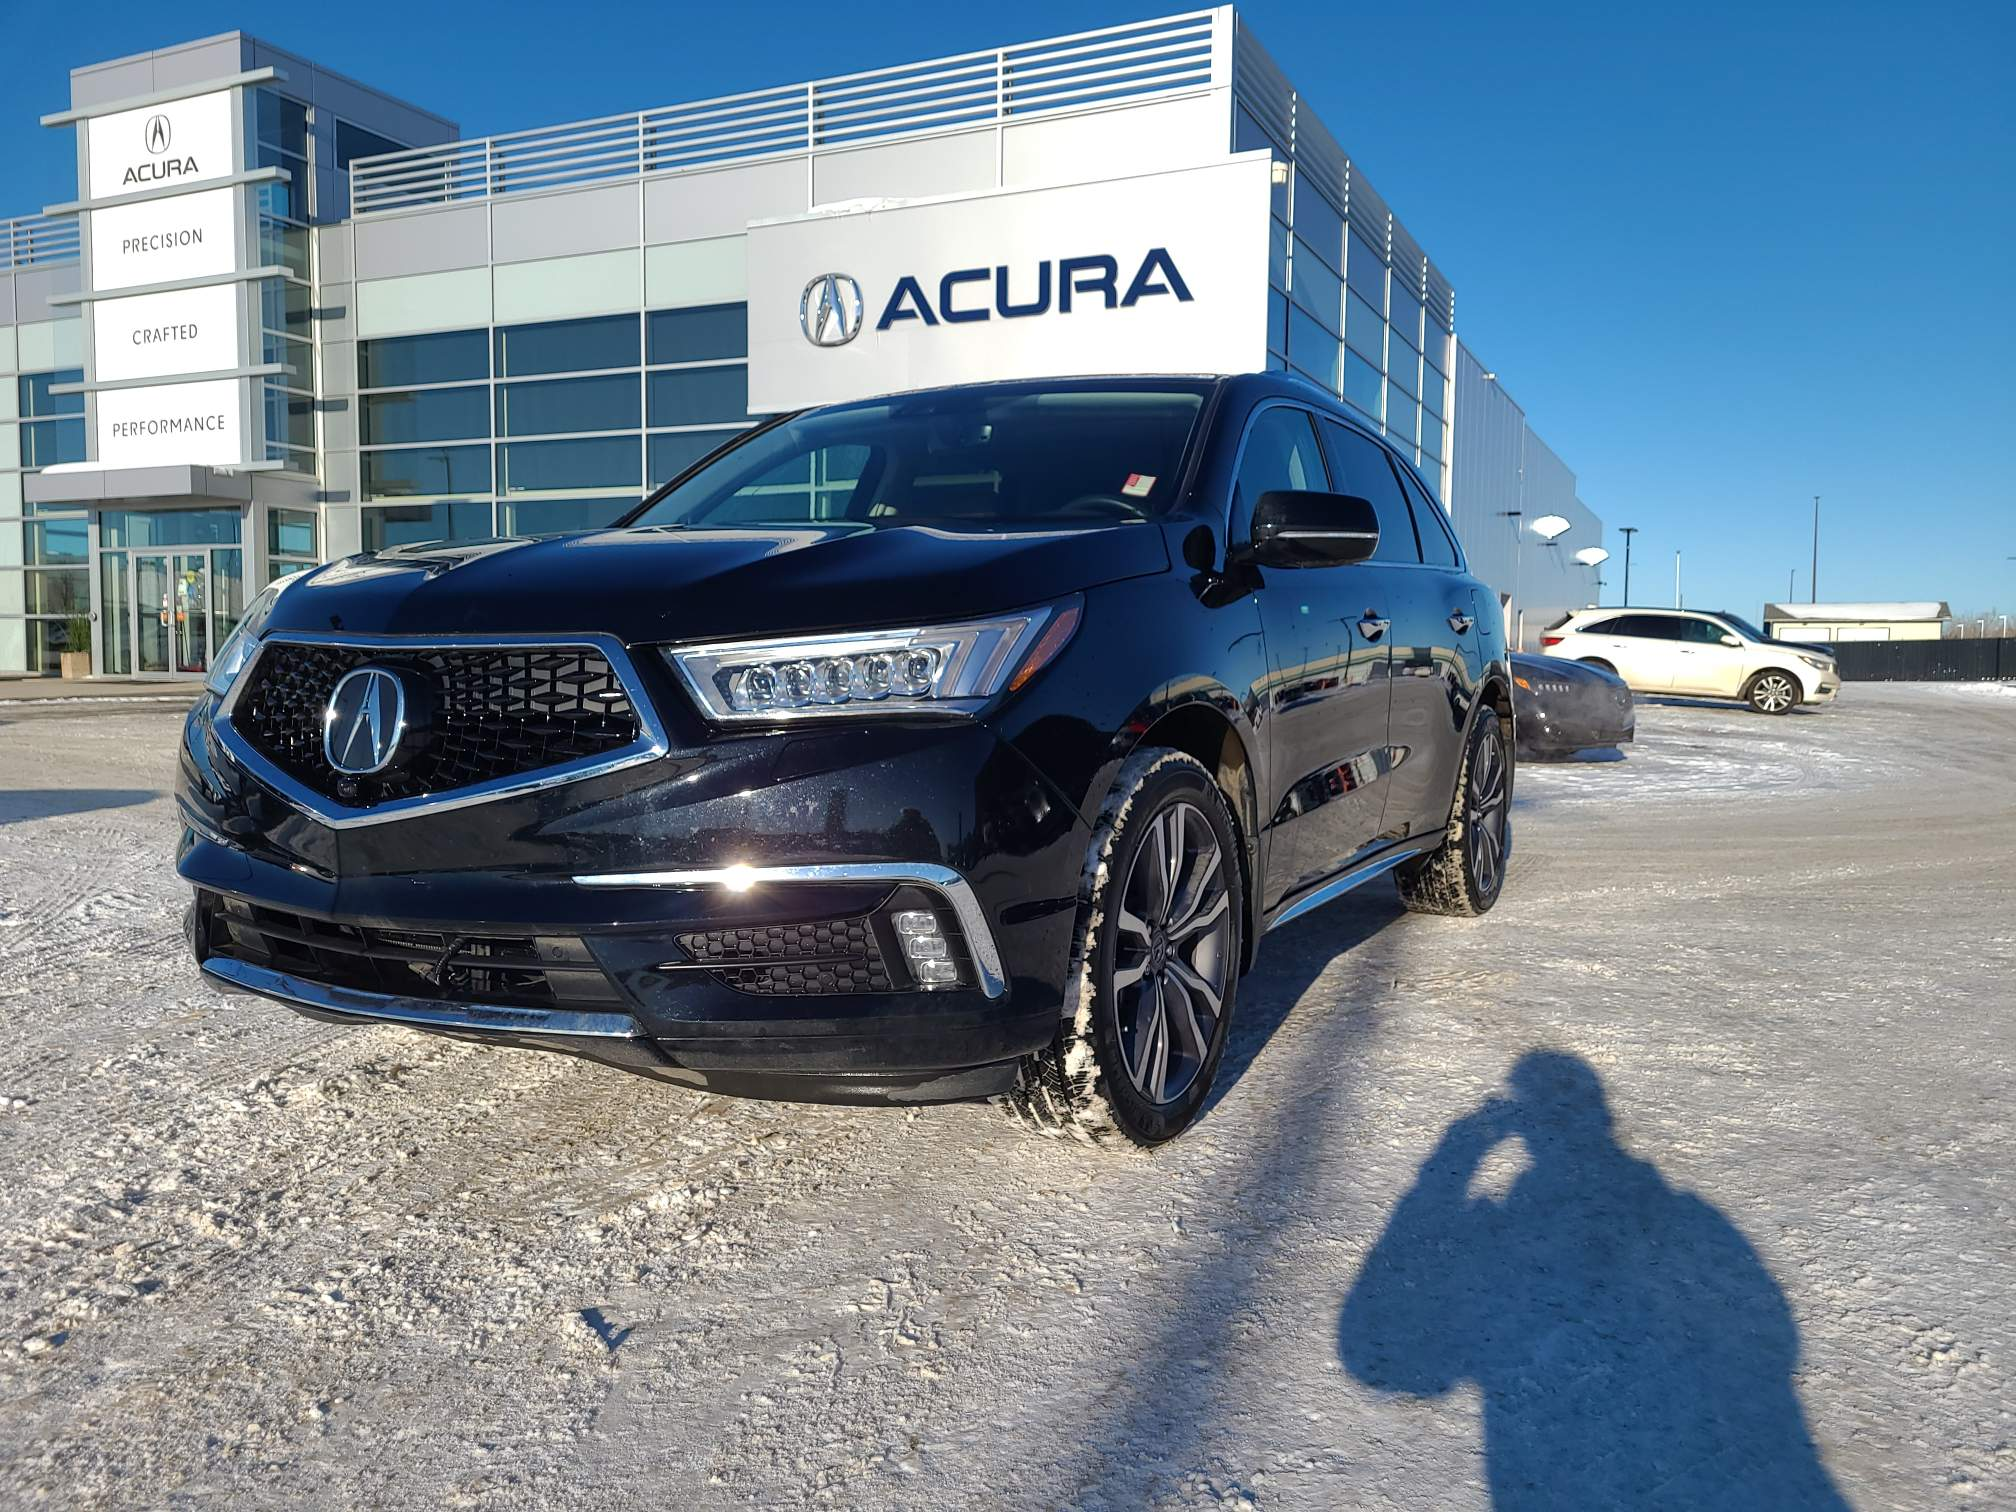 used 2019 Acura MDX car, priced at $54,963